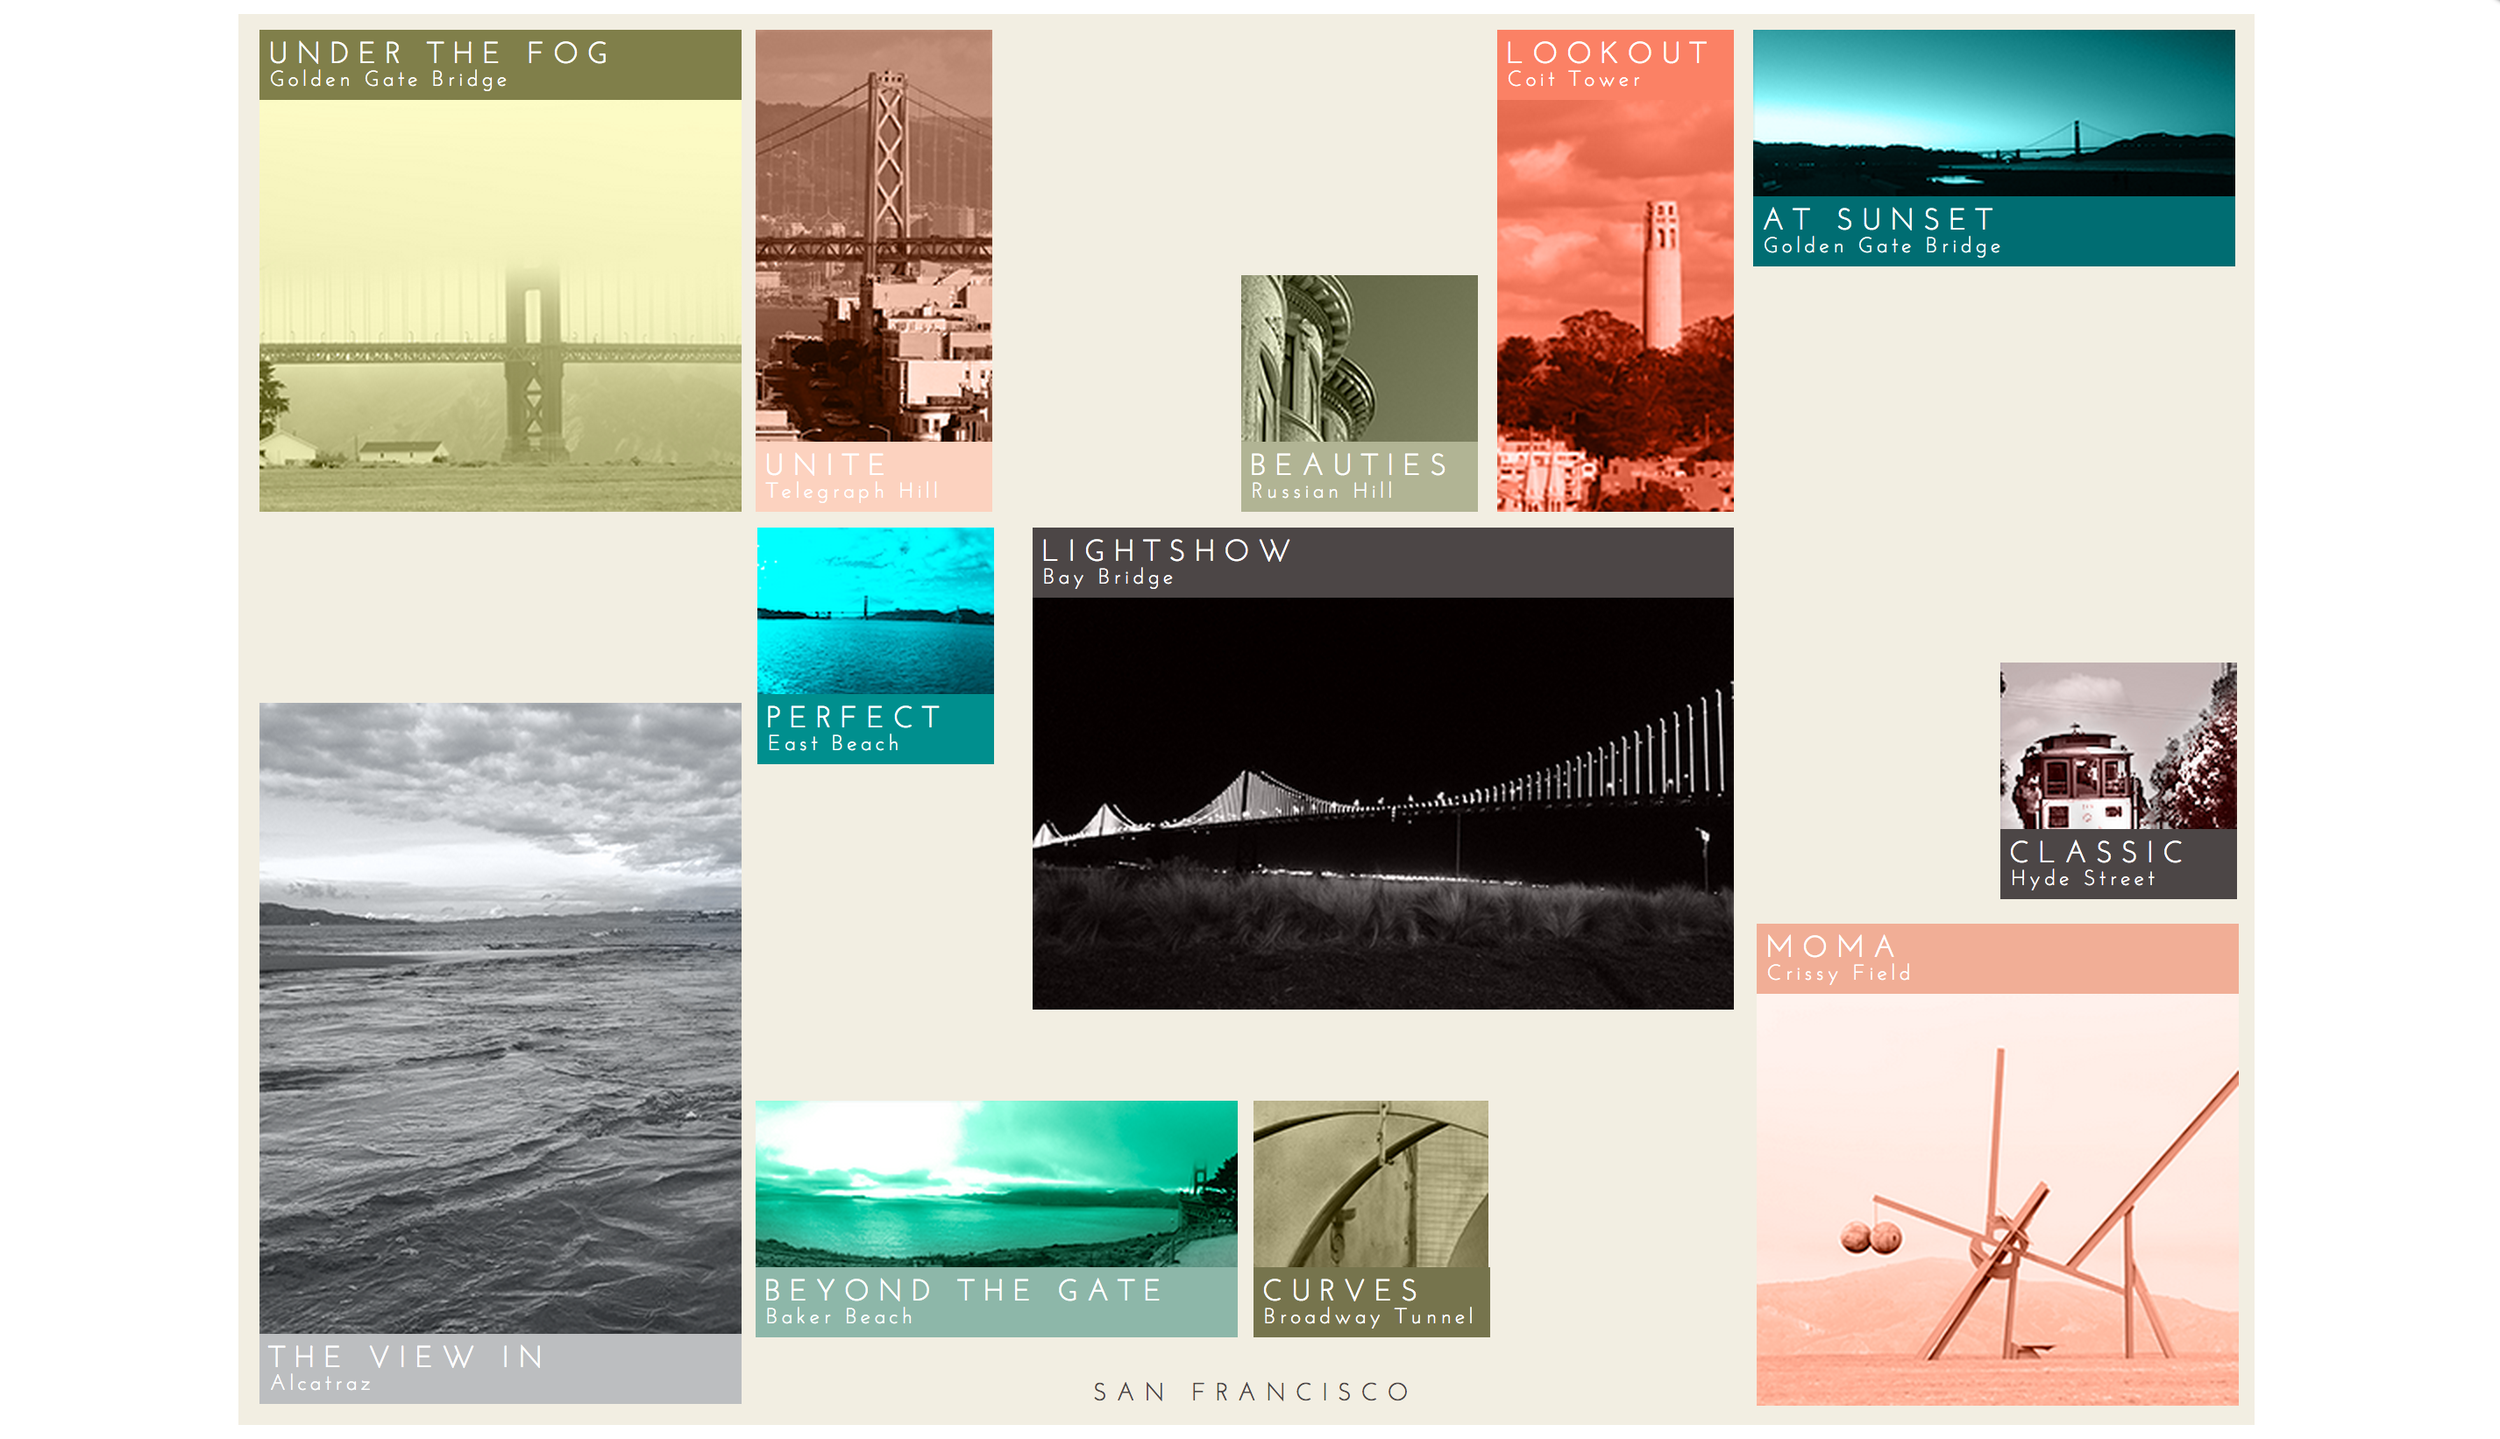 Gallery hand-built and designed with HTML5 &CSS3, with animation. Photography included.